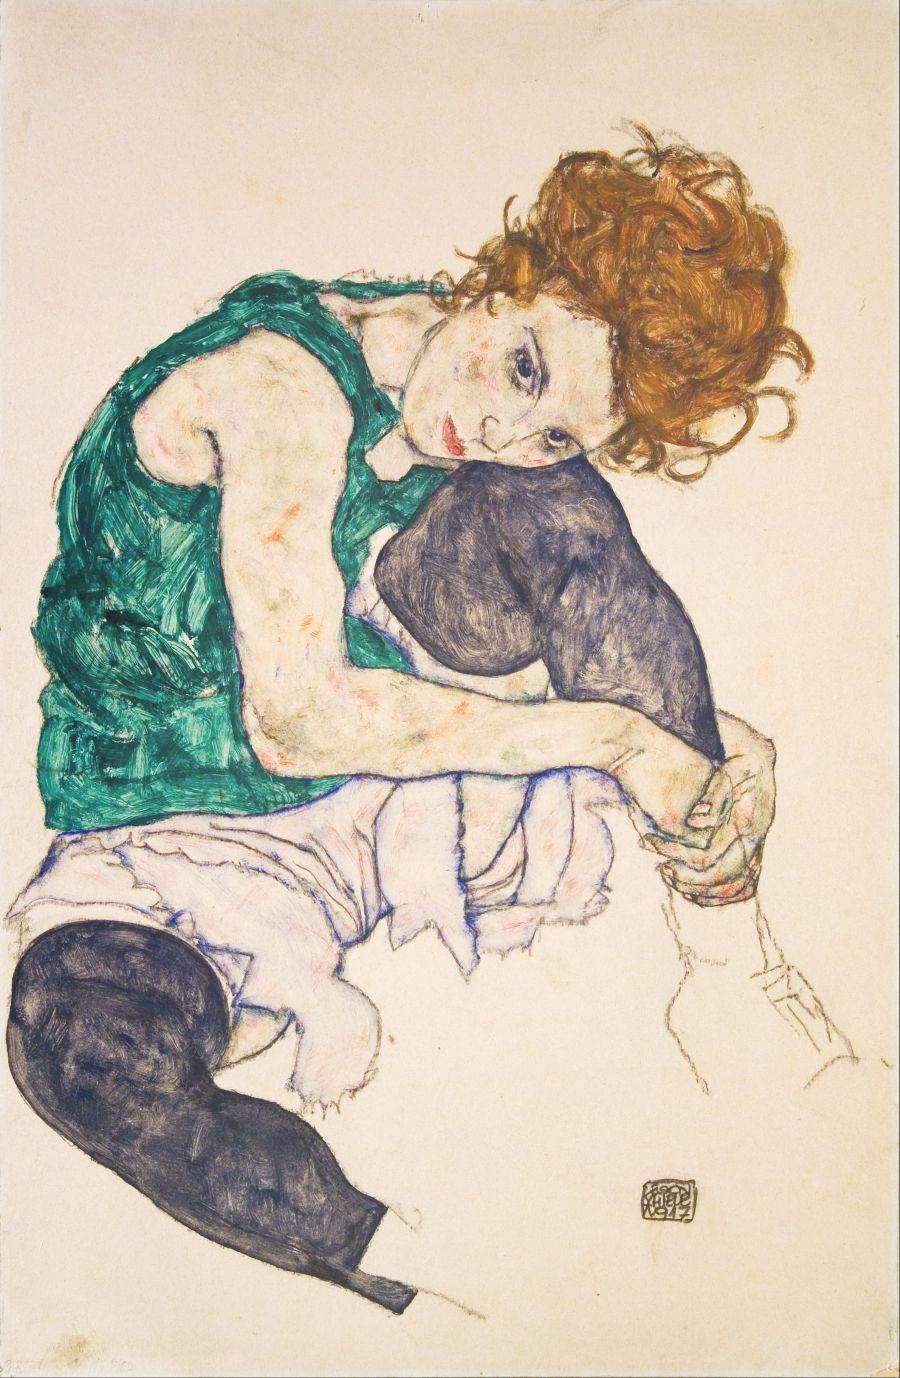 Egon_Schiele_-_Seated_Woman_with_Legs_Drawn_Up_(Adele_Herms)